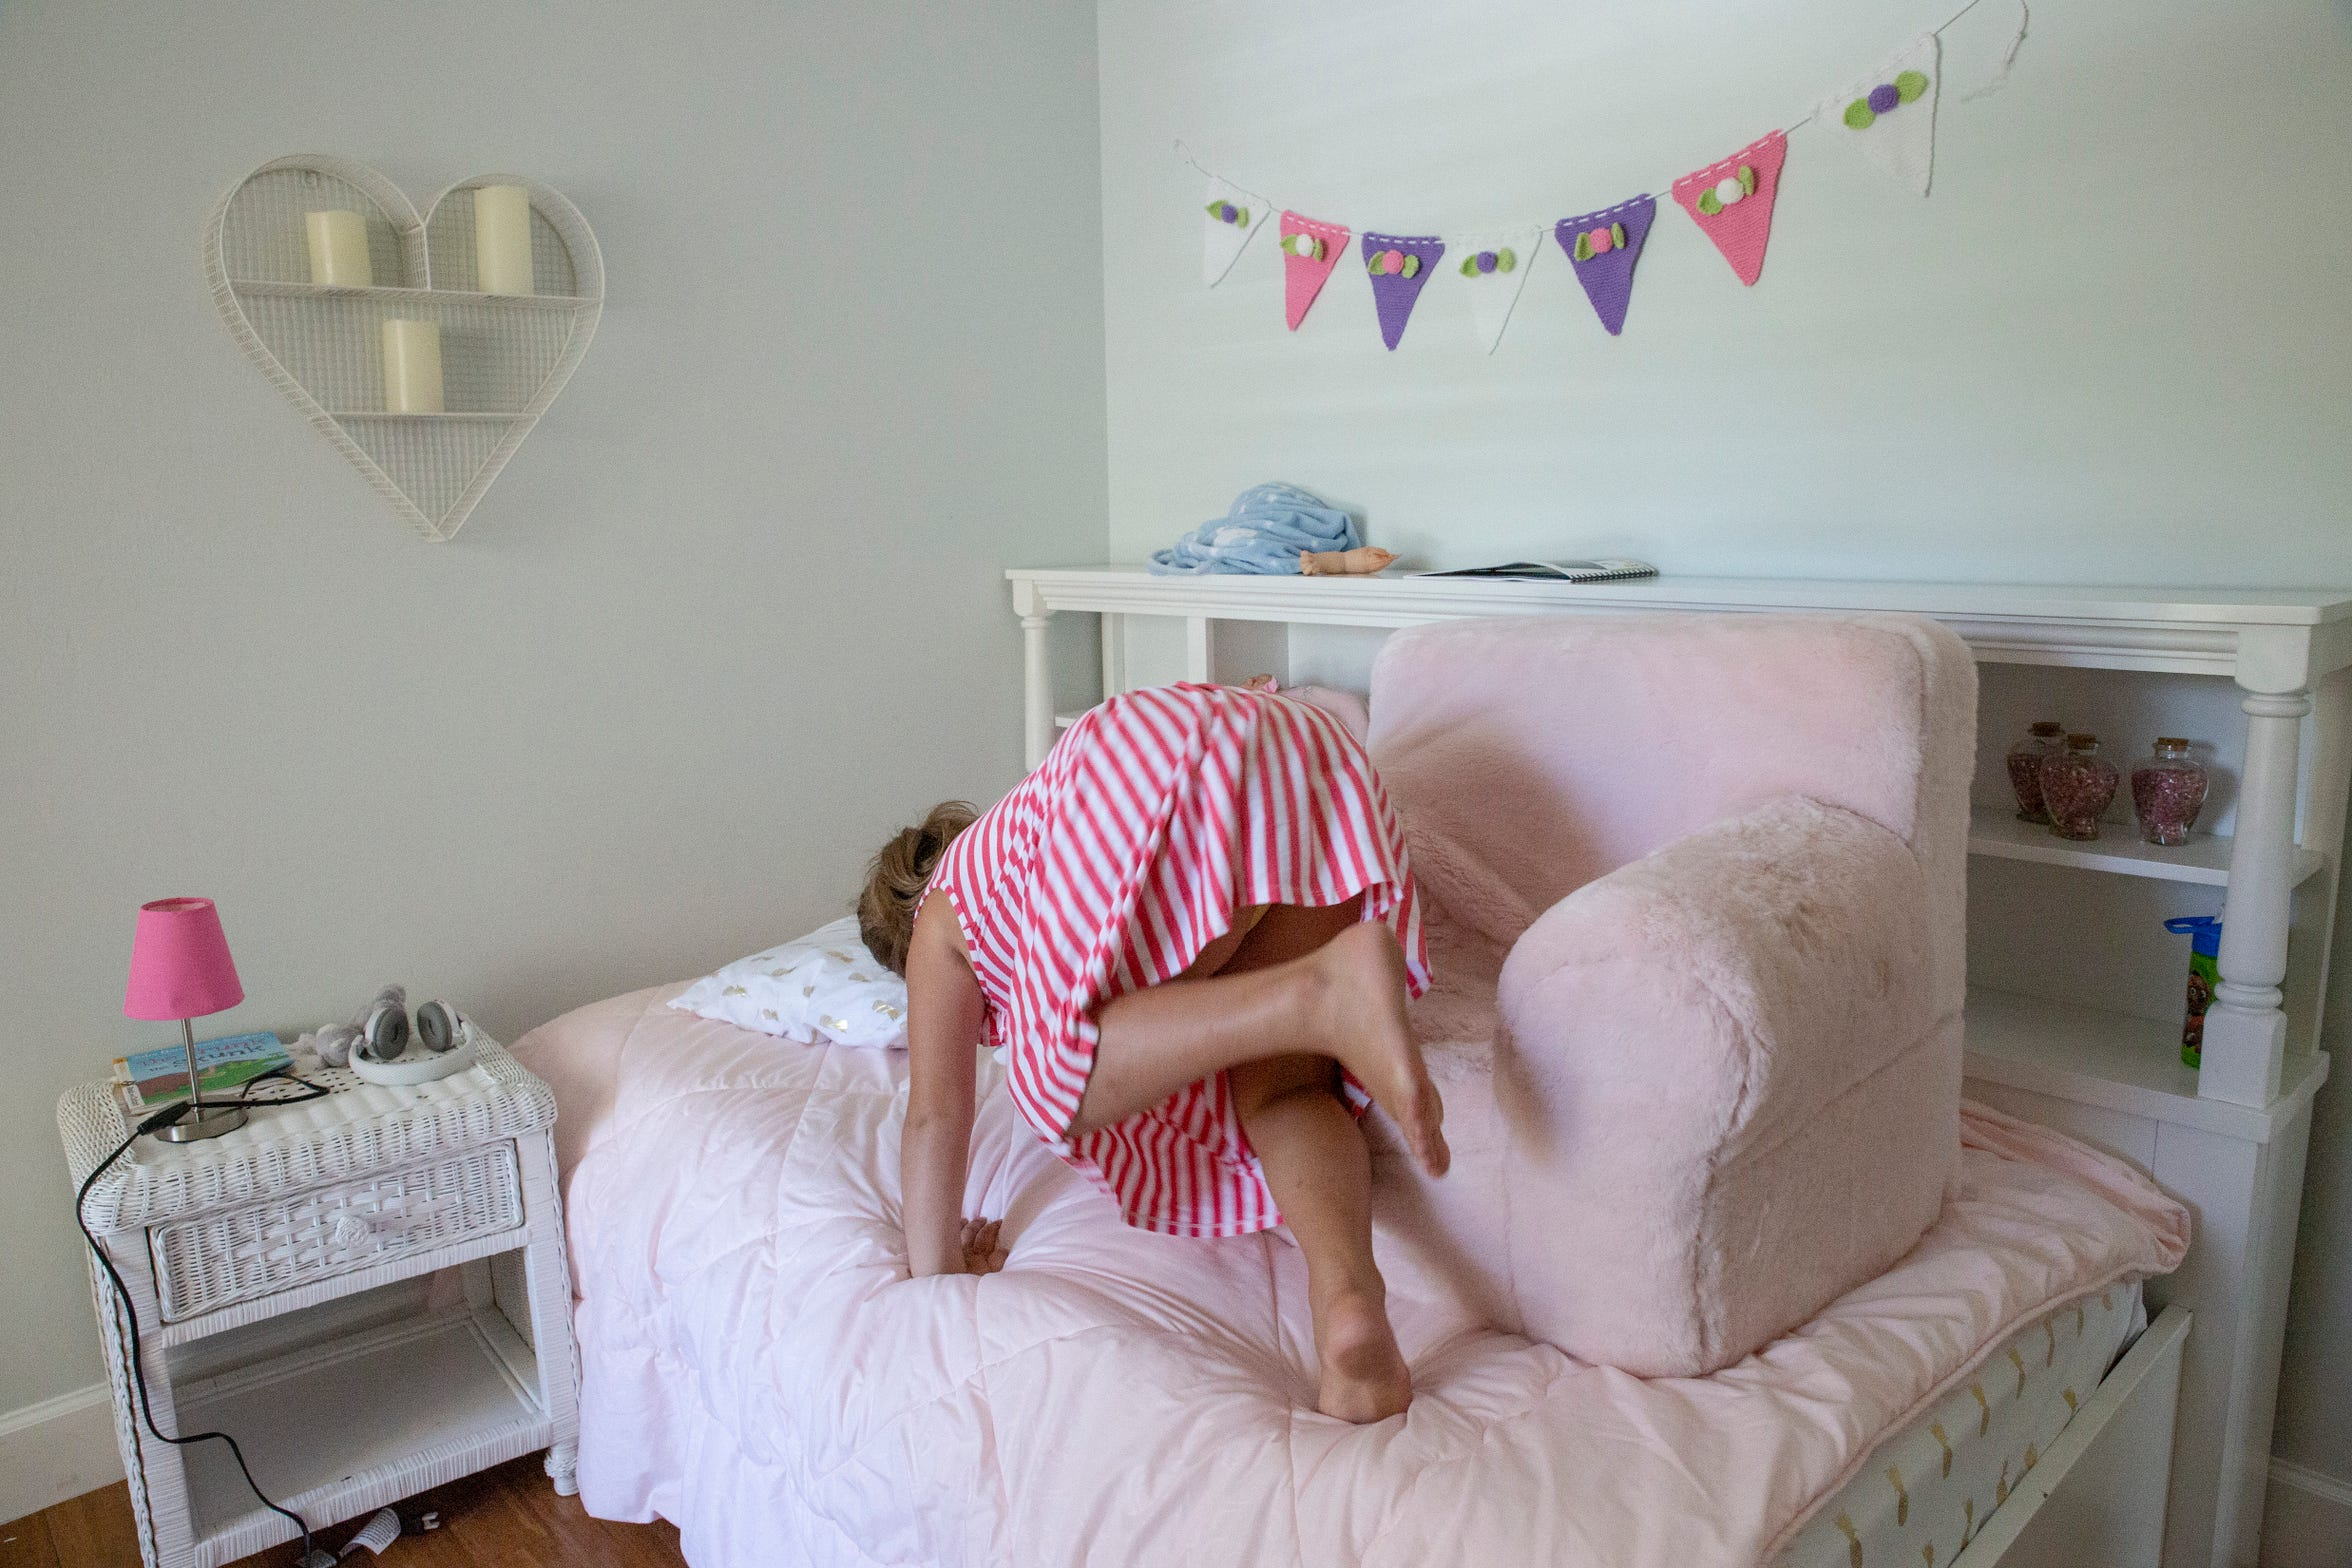 Libby Whittle lifts her sofa on her bed at home on Monday, July 29, 2019, in North Naples. Libby has epilepsy and recently had a Make-A-Wish experience in Key West as a therapeutic program.